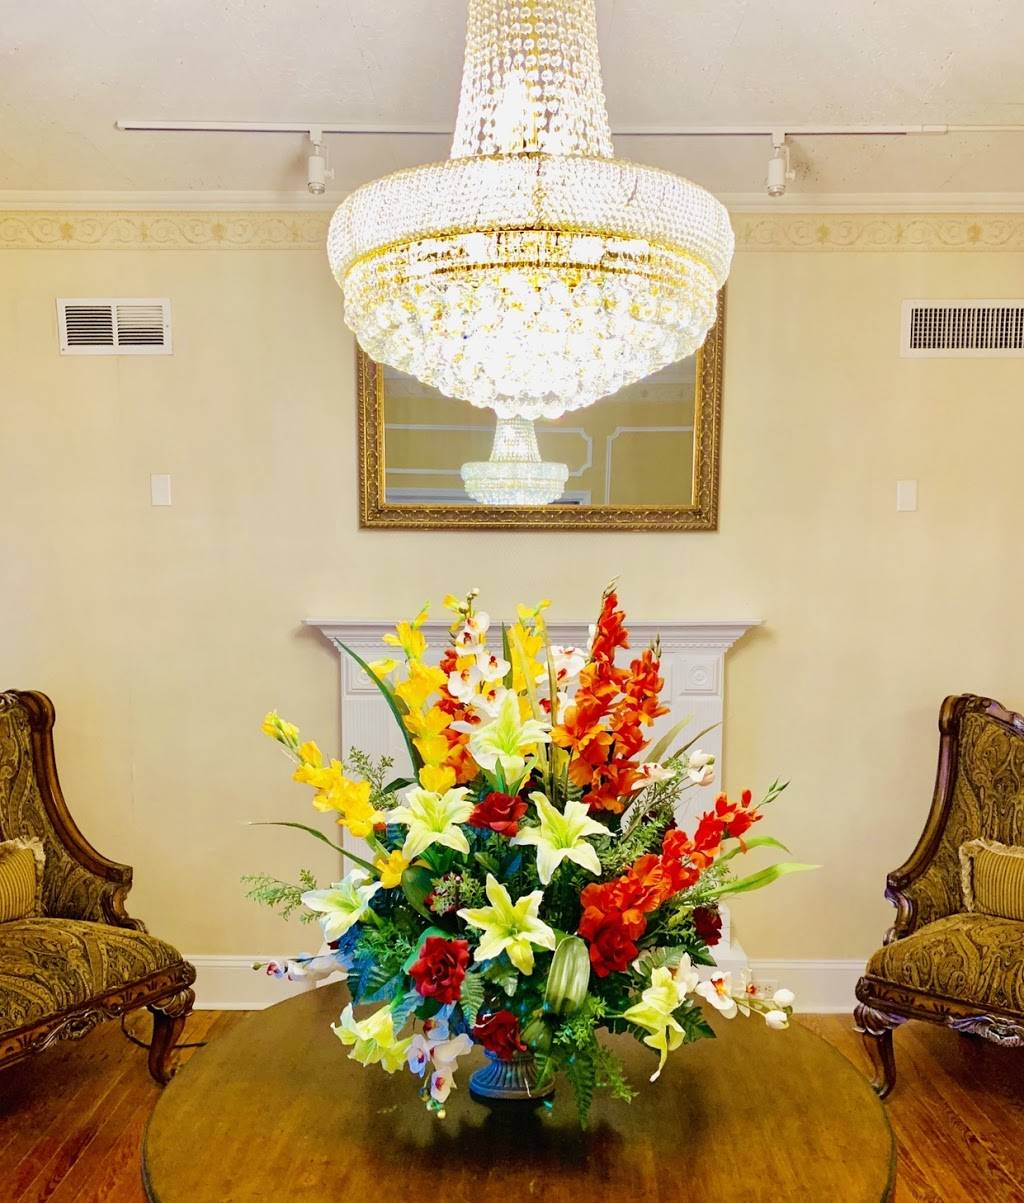 Chatman Harris Funeral Home - funeral home  | Photo 7 of 10 | Address: 4210 Belair Rd, Baltimore, MD 21206, USA | Phone: (410) 488-5947